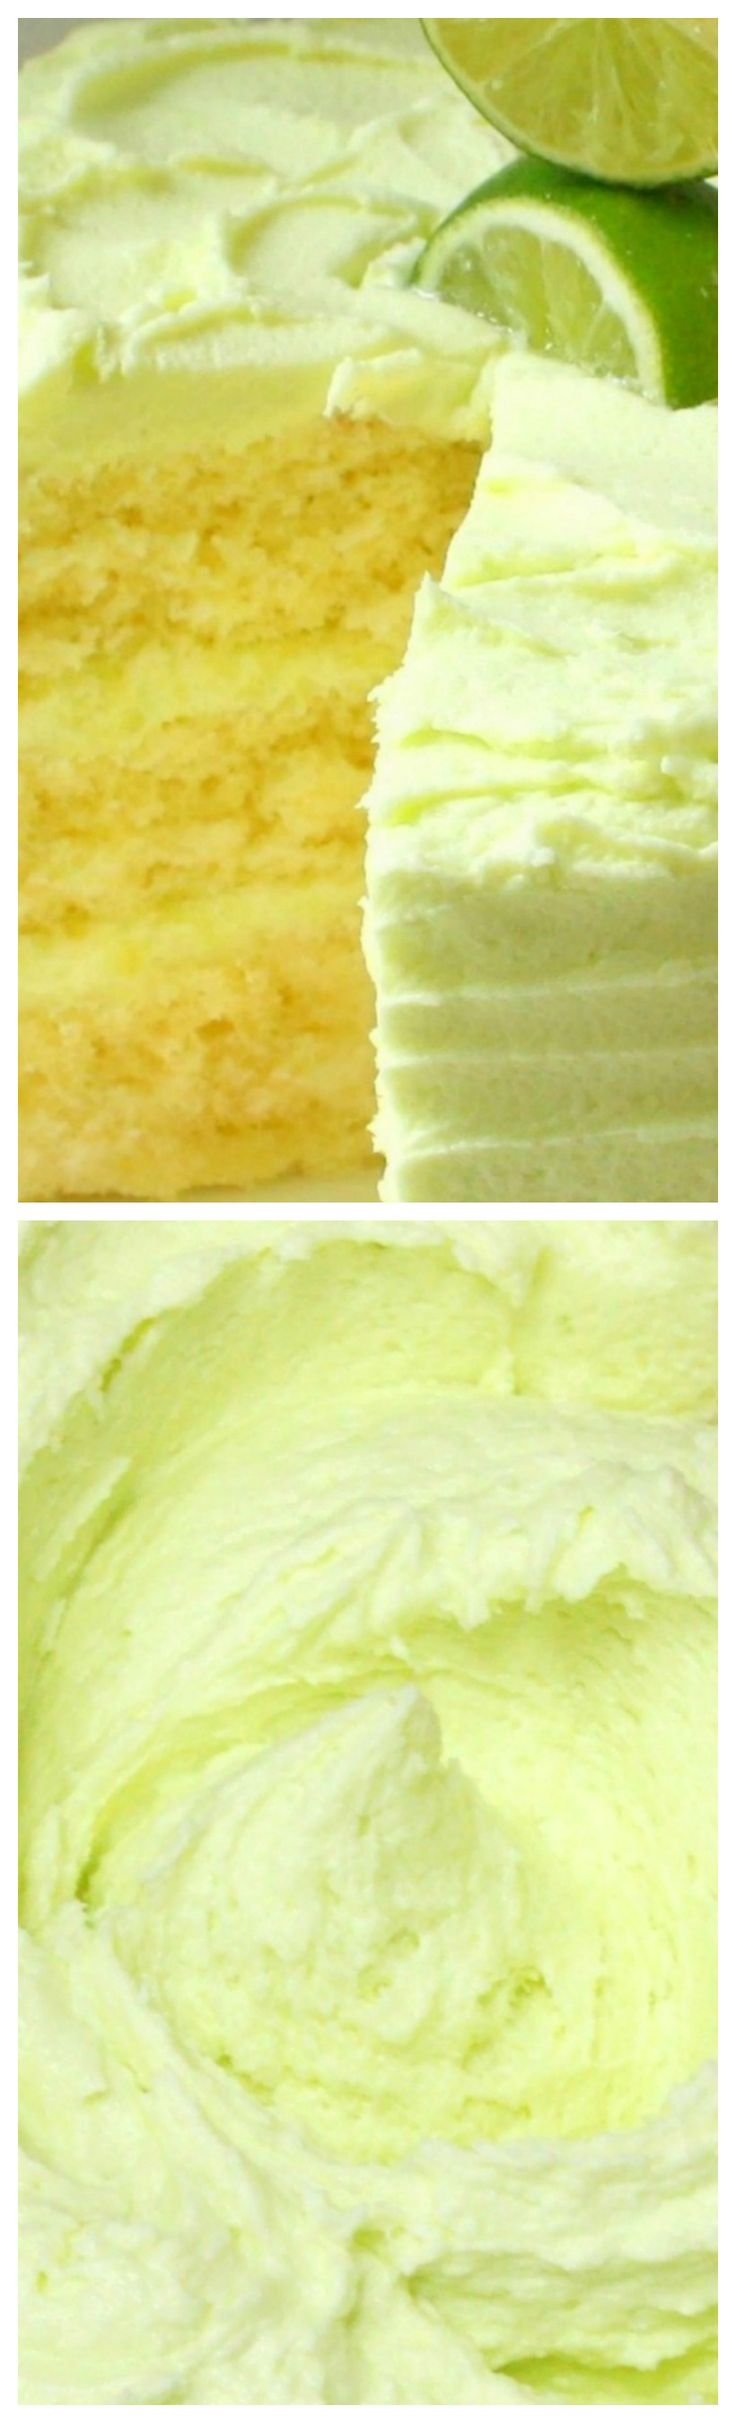 Delicious Margarita Cake with Tequila Lime Buttercream ~ Frozen Margarita Mix is our secret ingredient for the cake's wonderful tanginess, which is perfectly balanced with our Tequila Lime filling and frosting! The layers are moist and soft, and this recipe is suitable for cupcakes also!